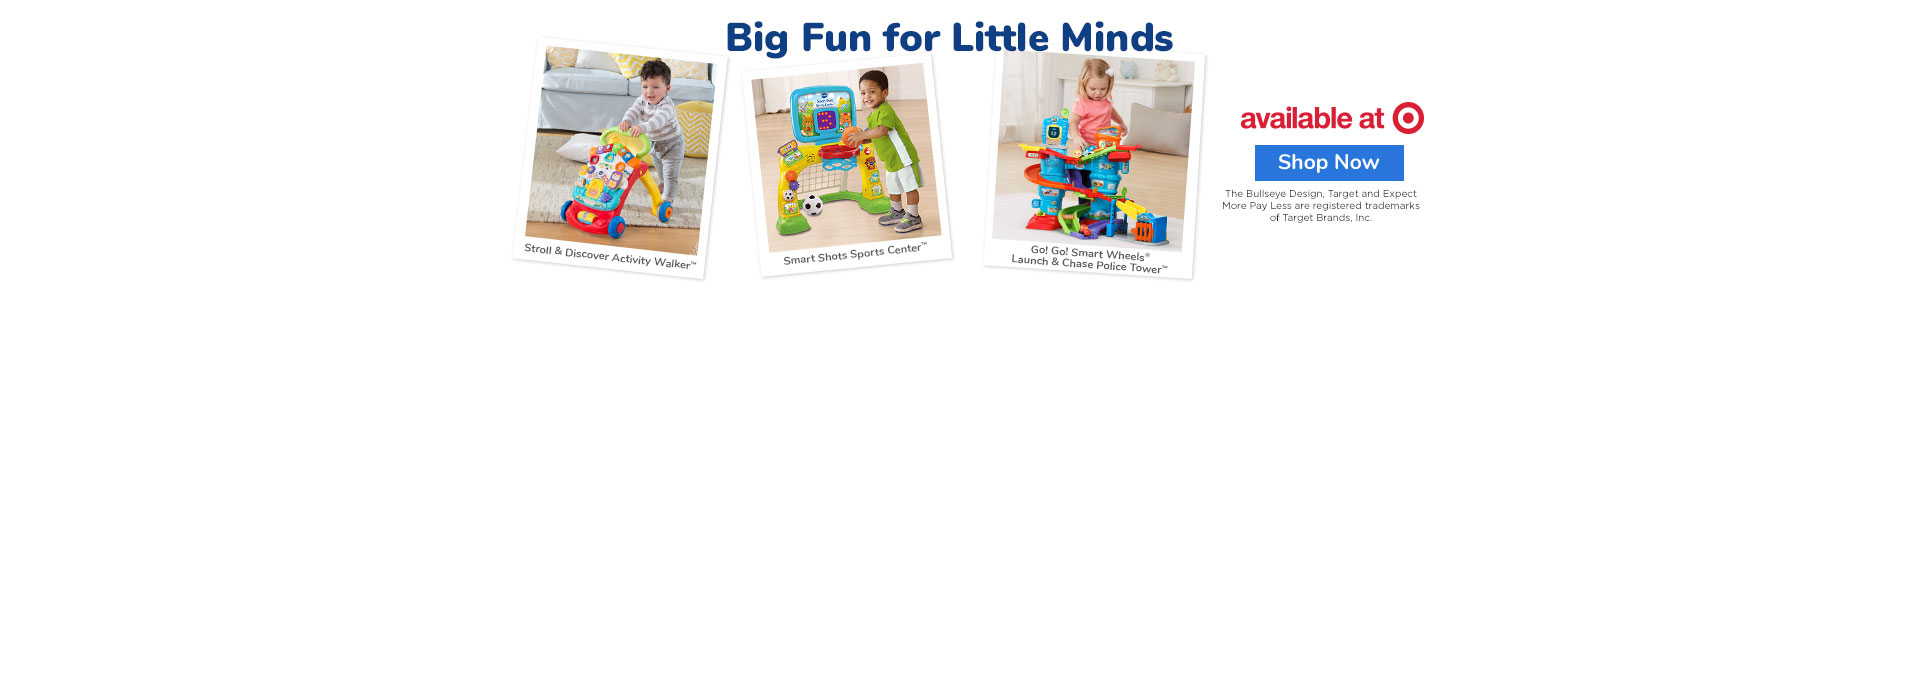 New Learning Toys Available at Target